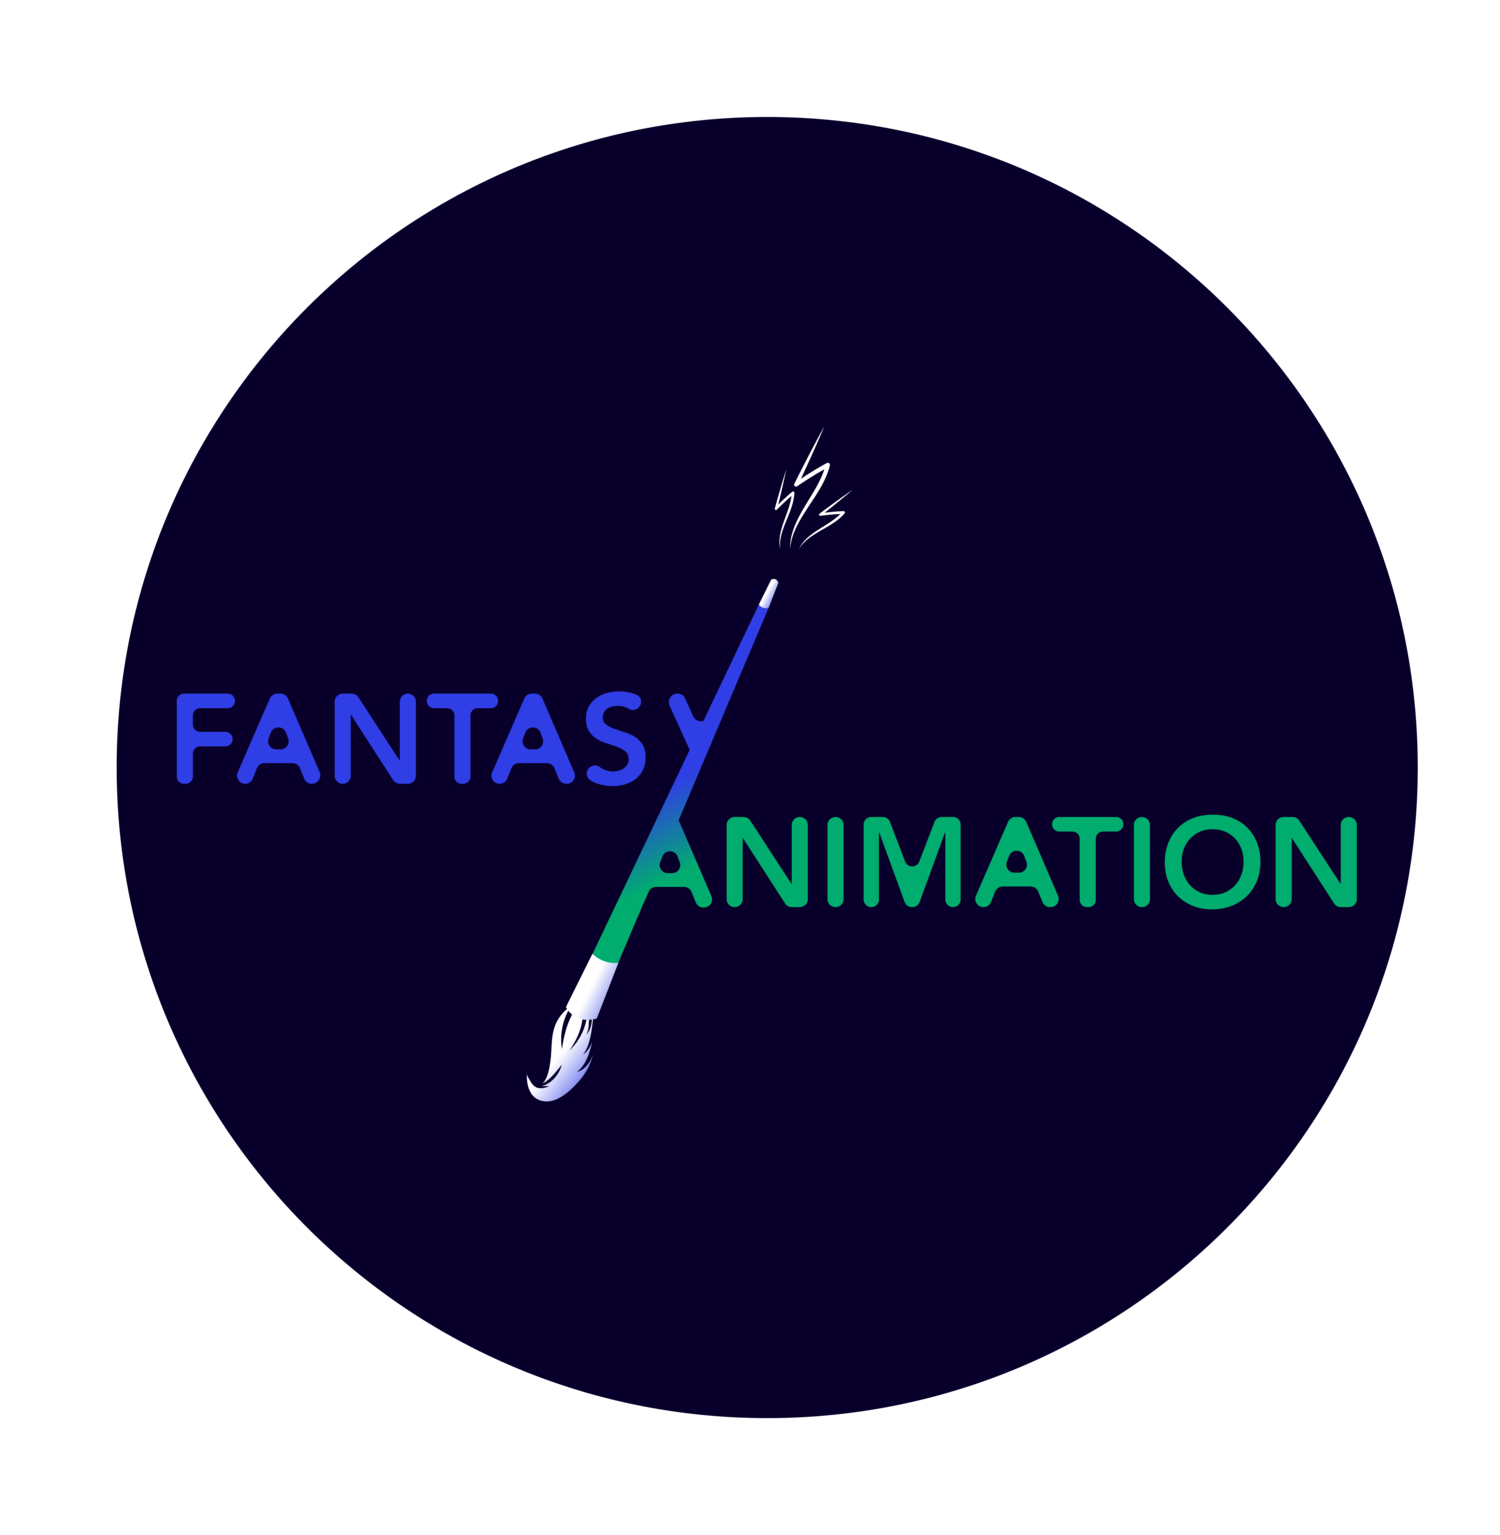 Fantasy/Animation